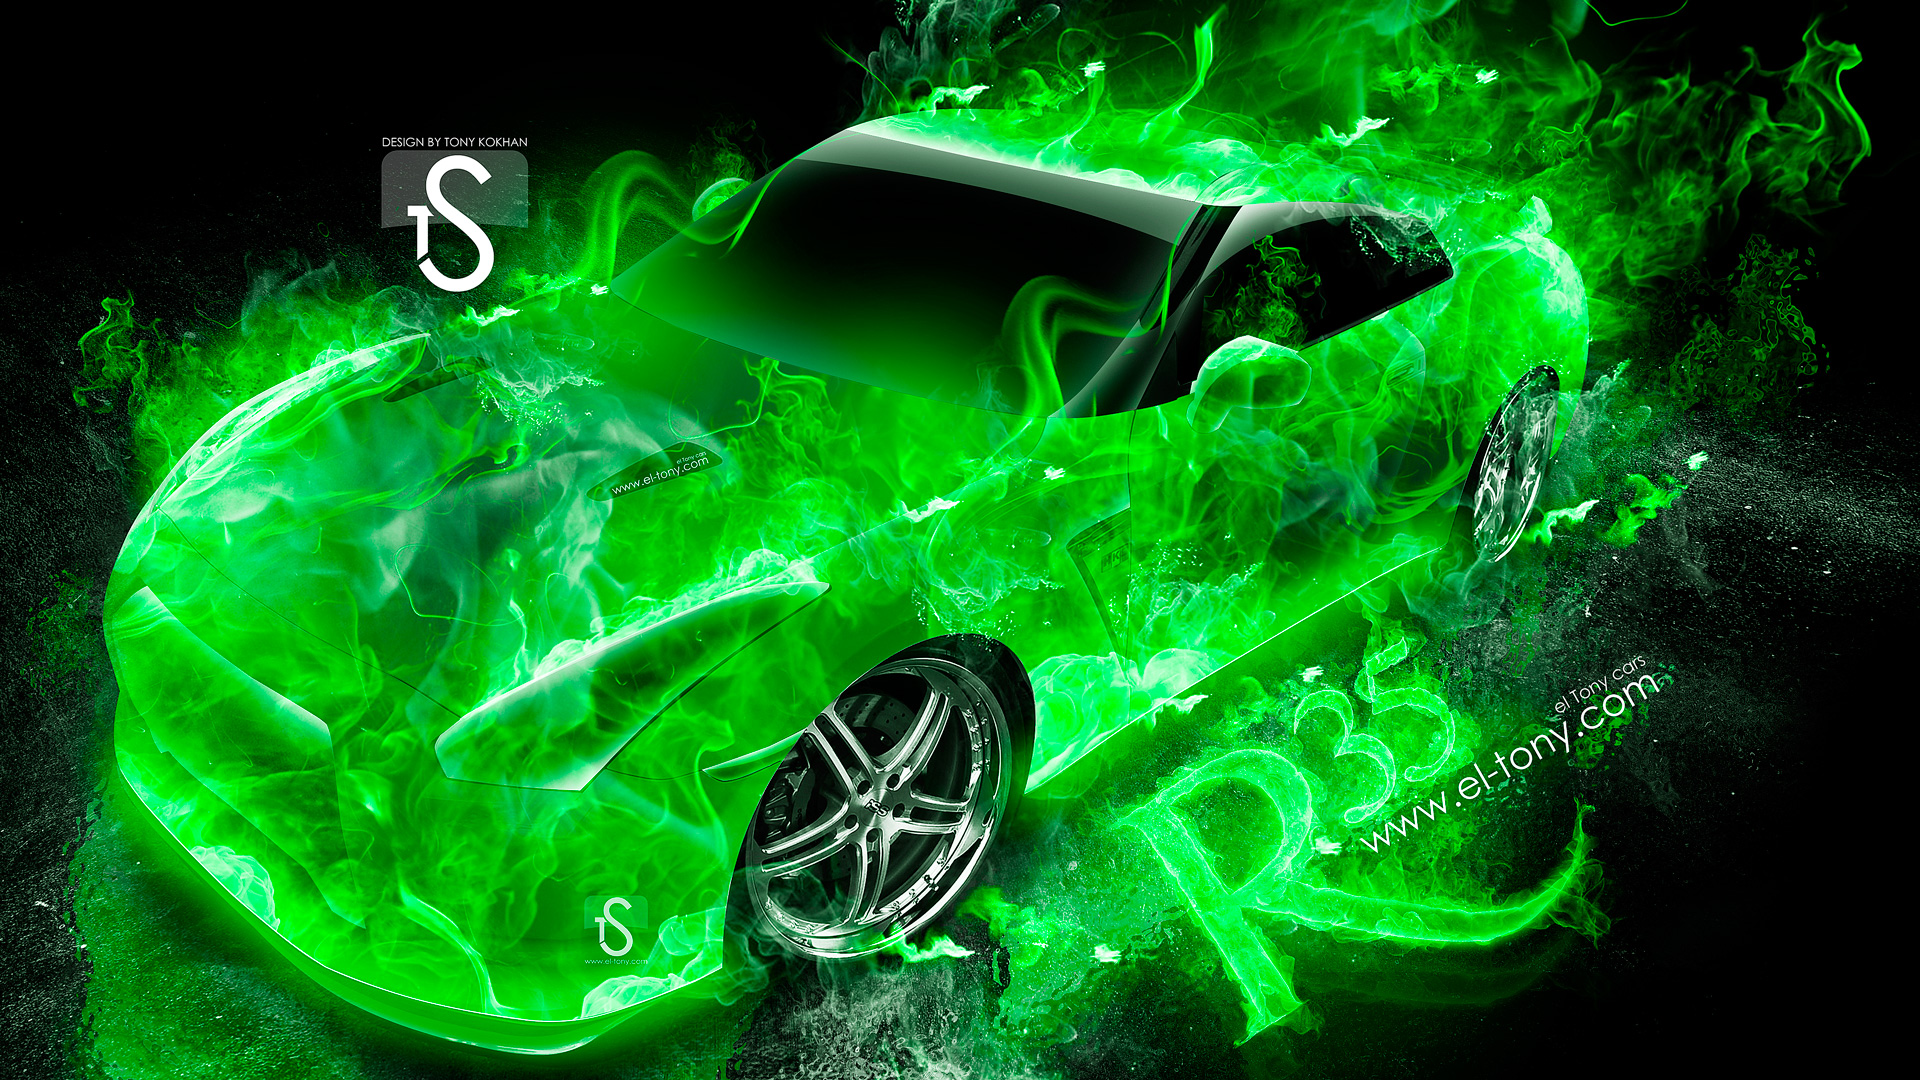 Lotus Elise Up Fire Abstract Car 2014 | El Tony